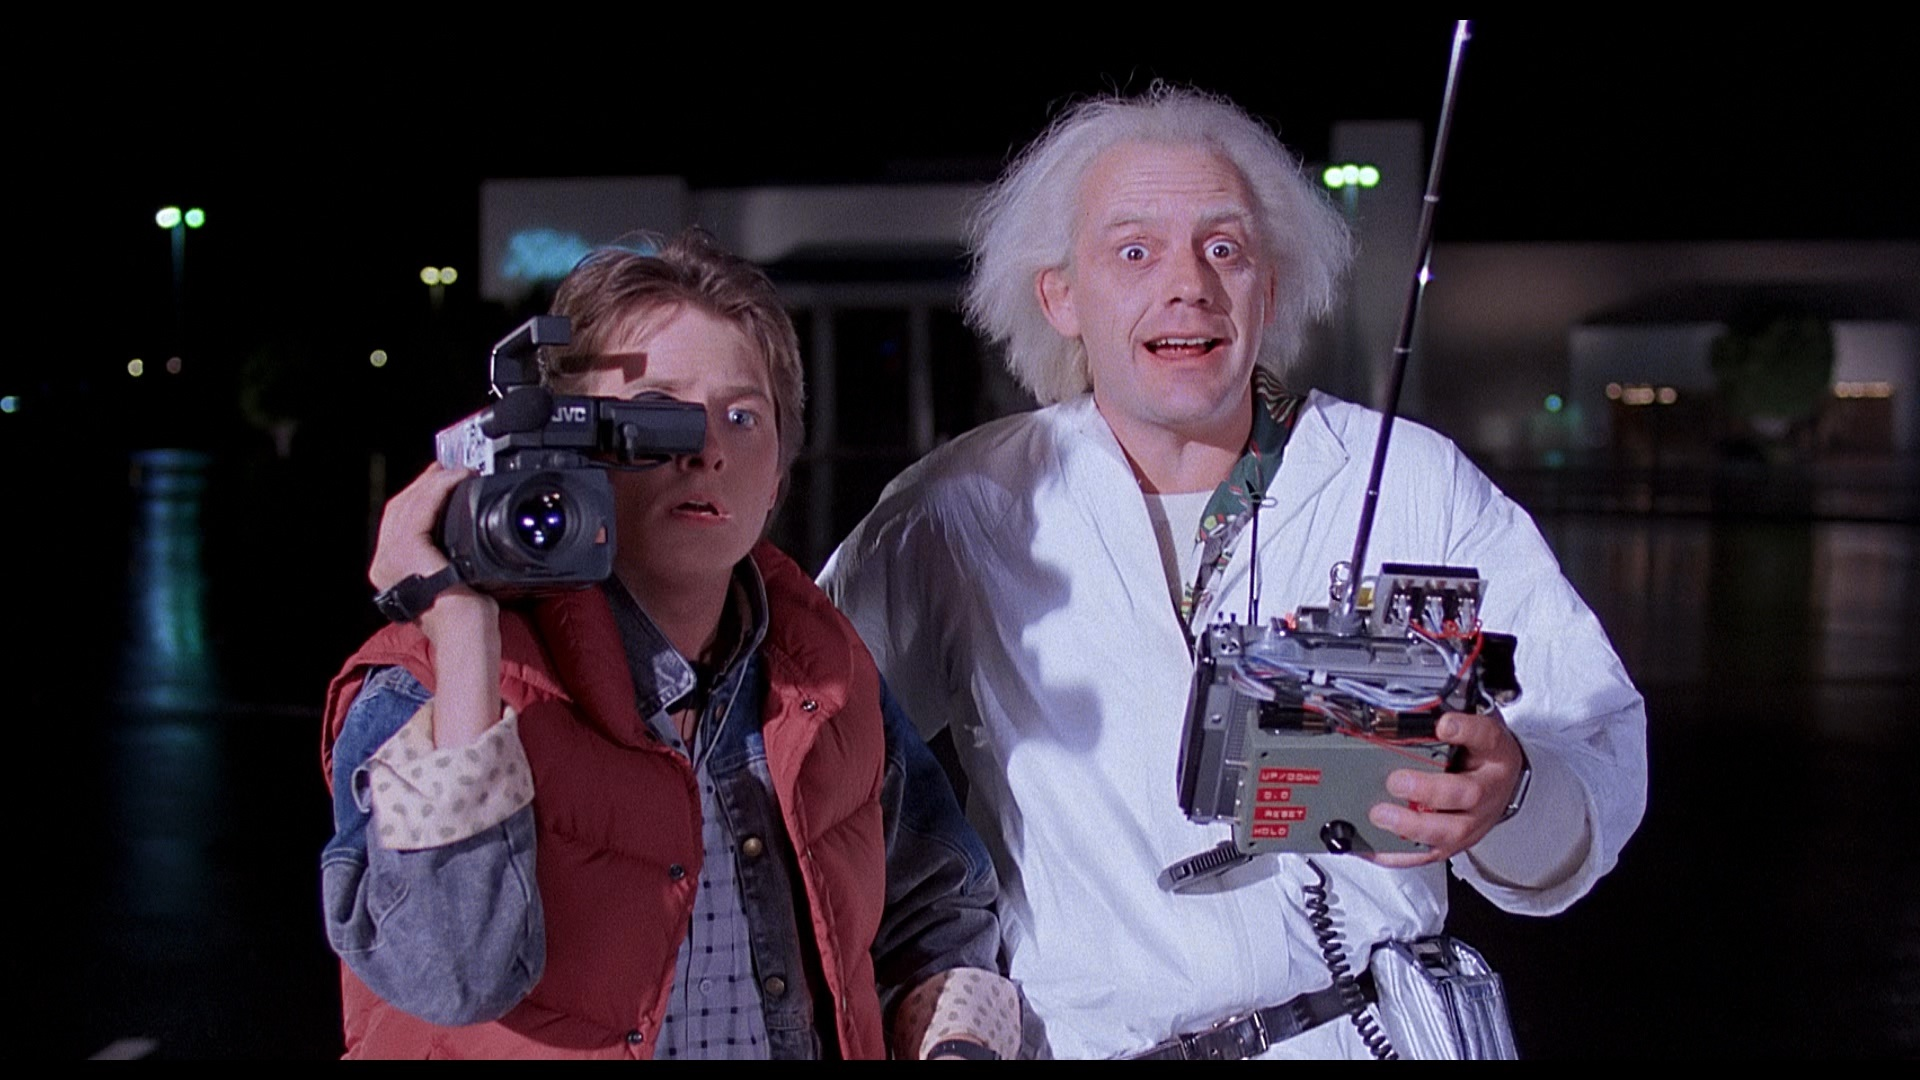 Wait, are we getting a new 'Back to the Future' movie?!